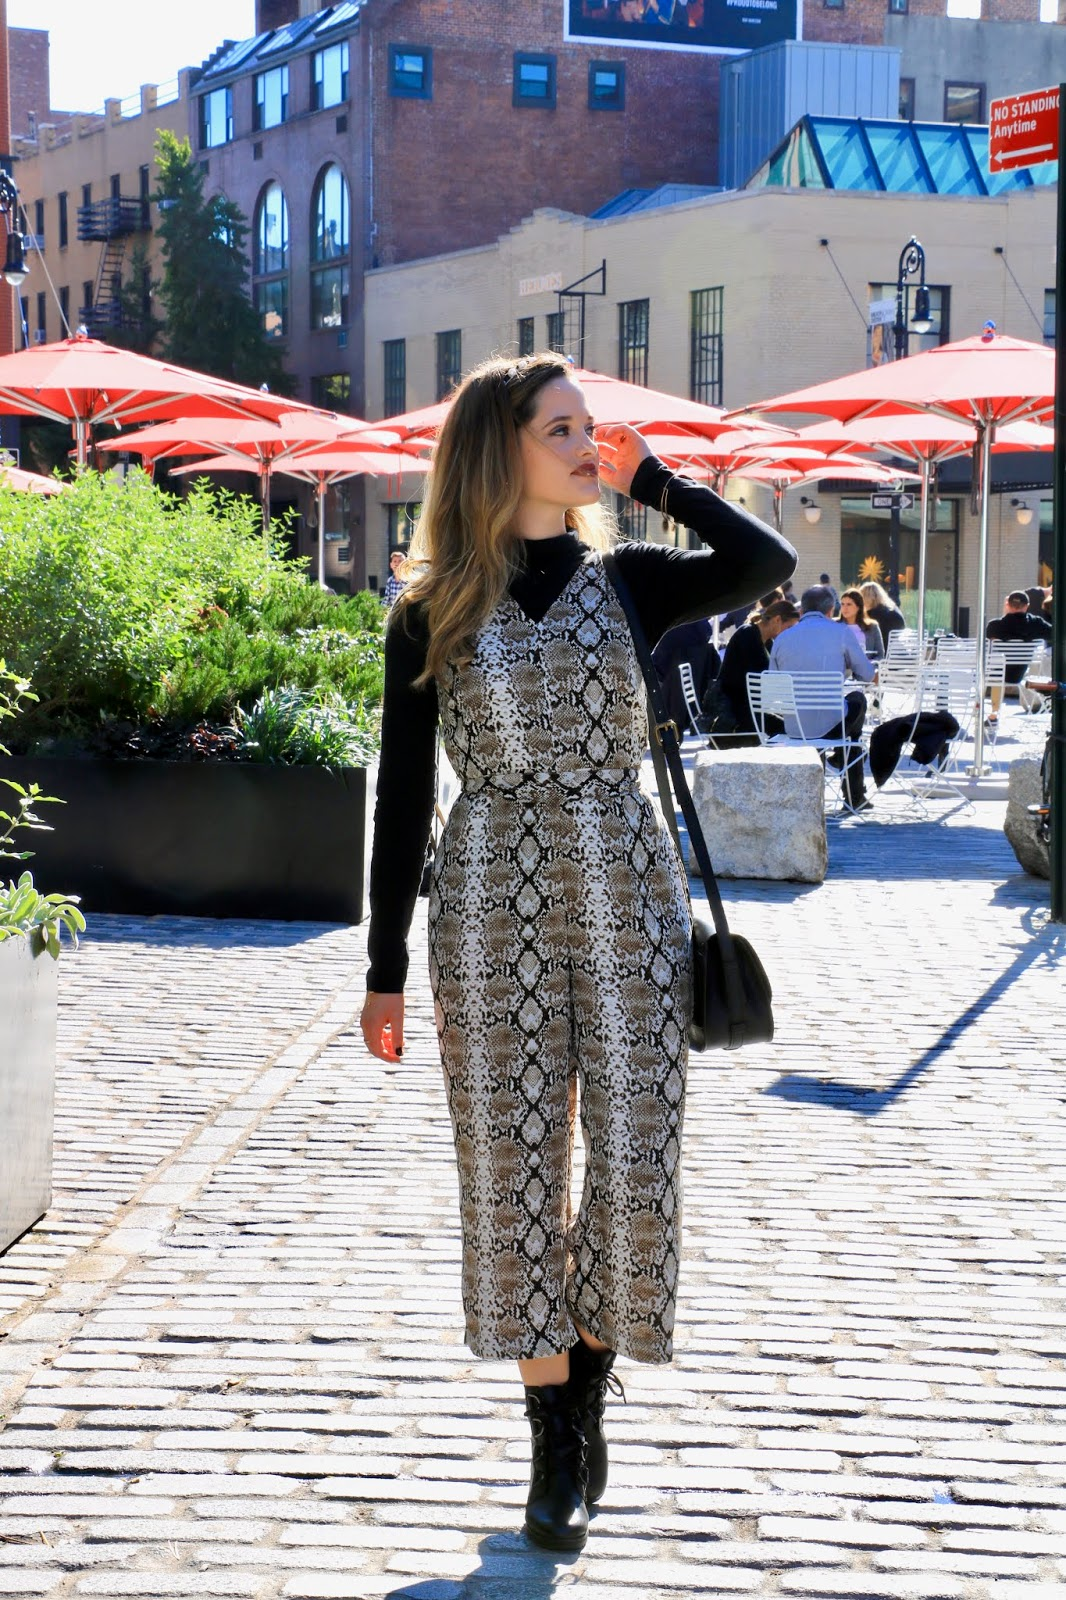 Nyc fashion blogger Kathleen Harper's photo shoot in the Meatpacking District.